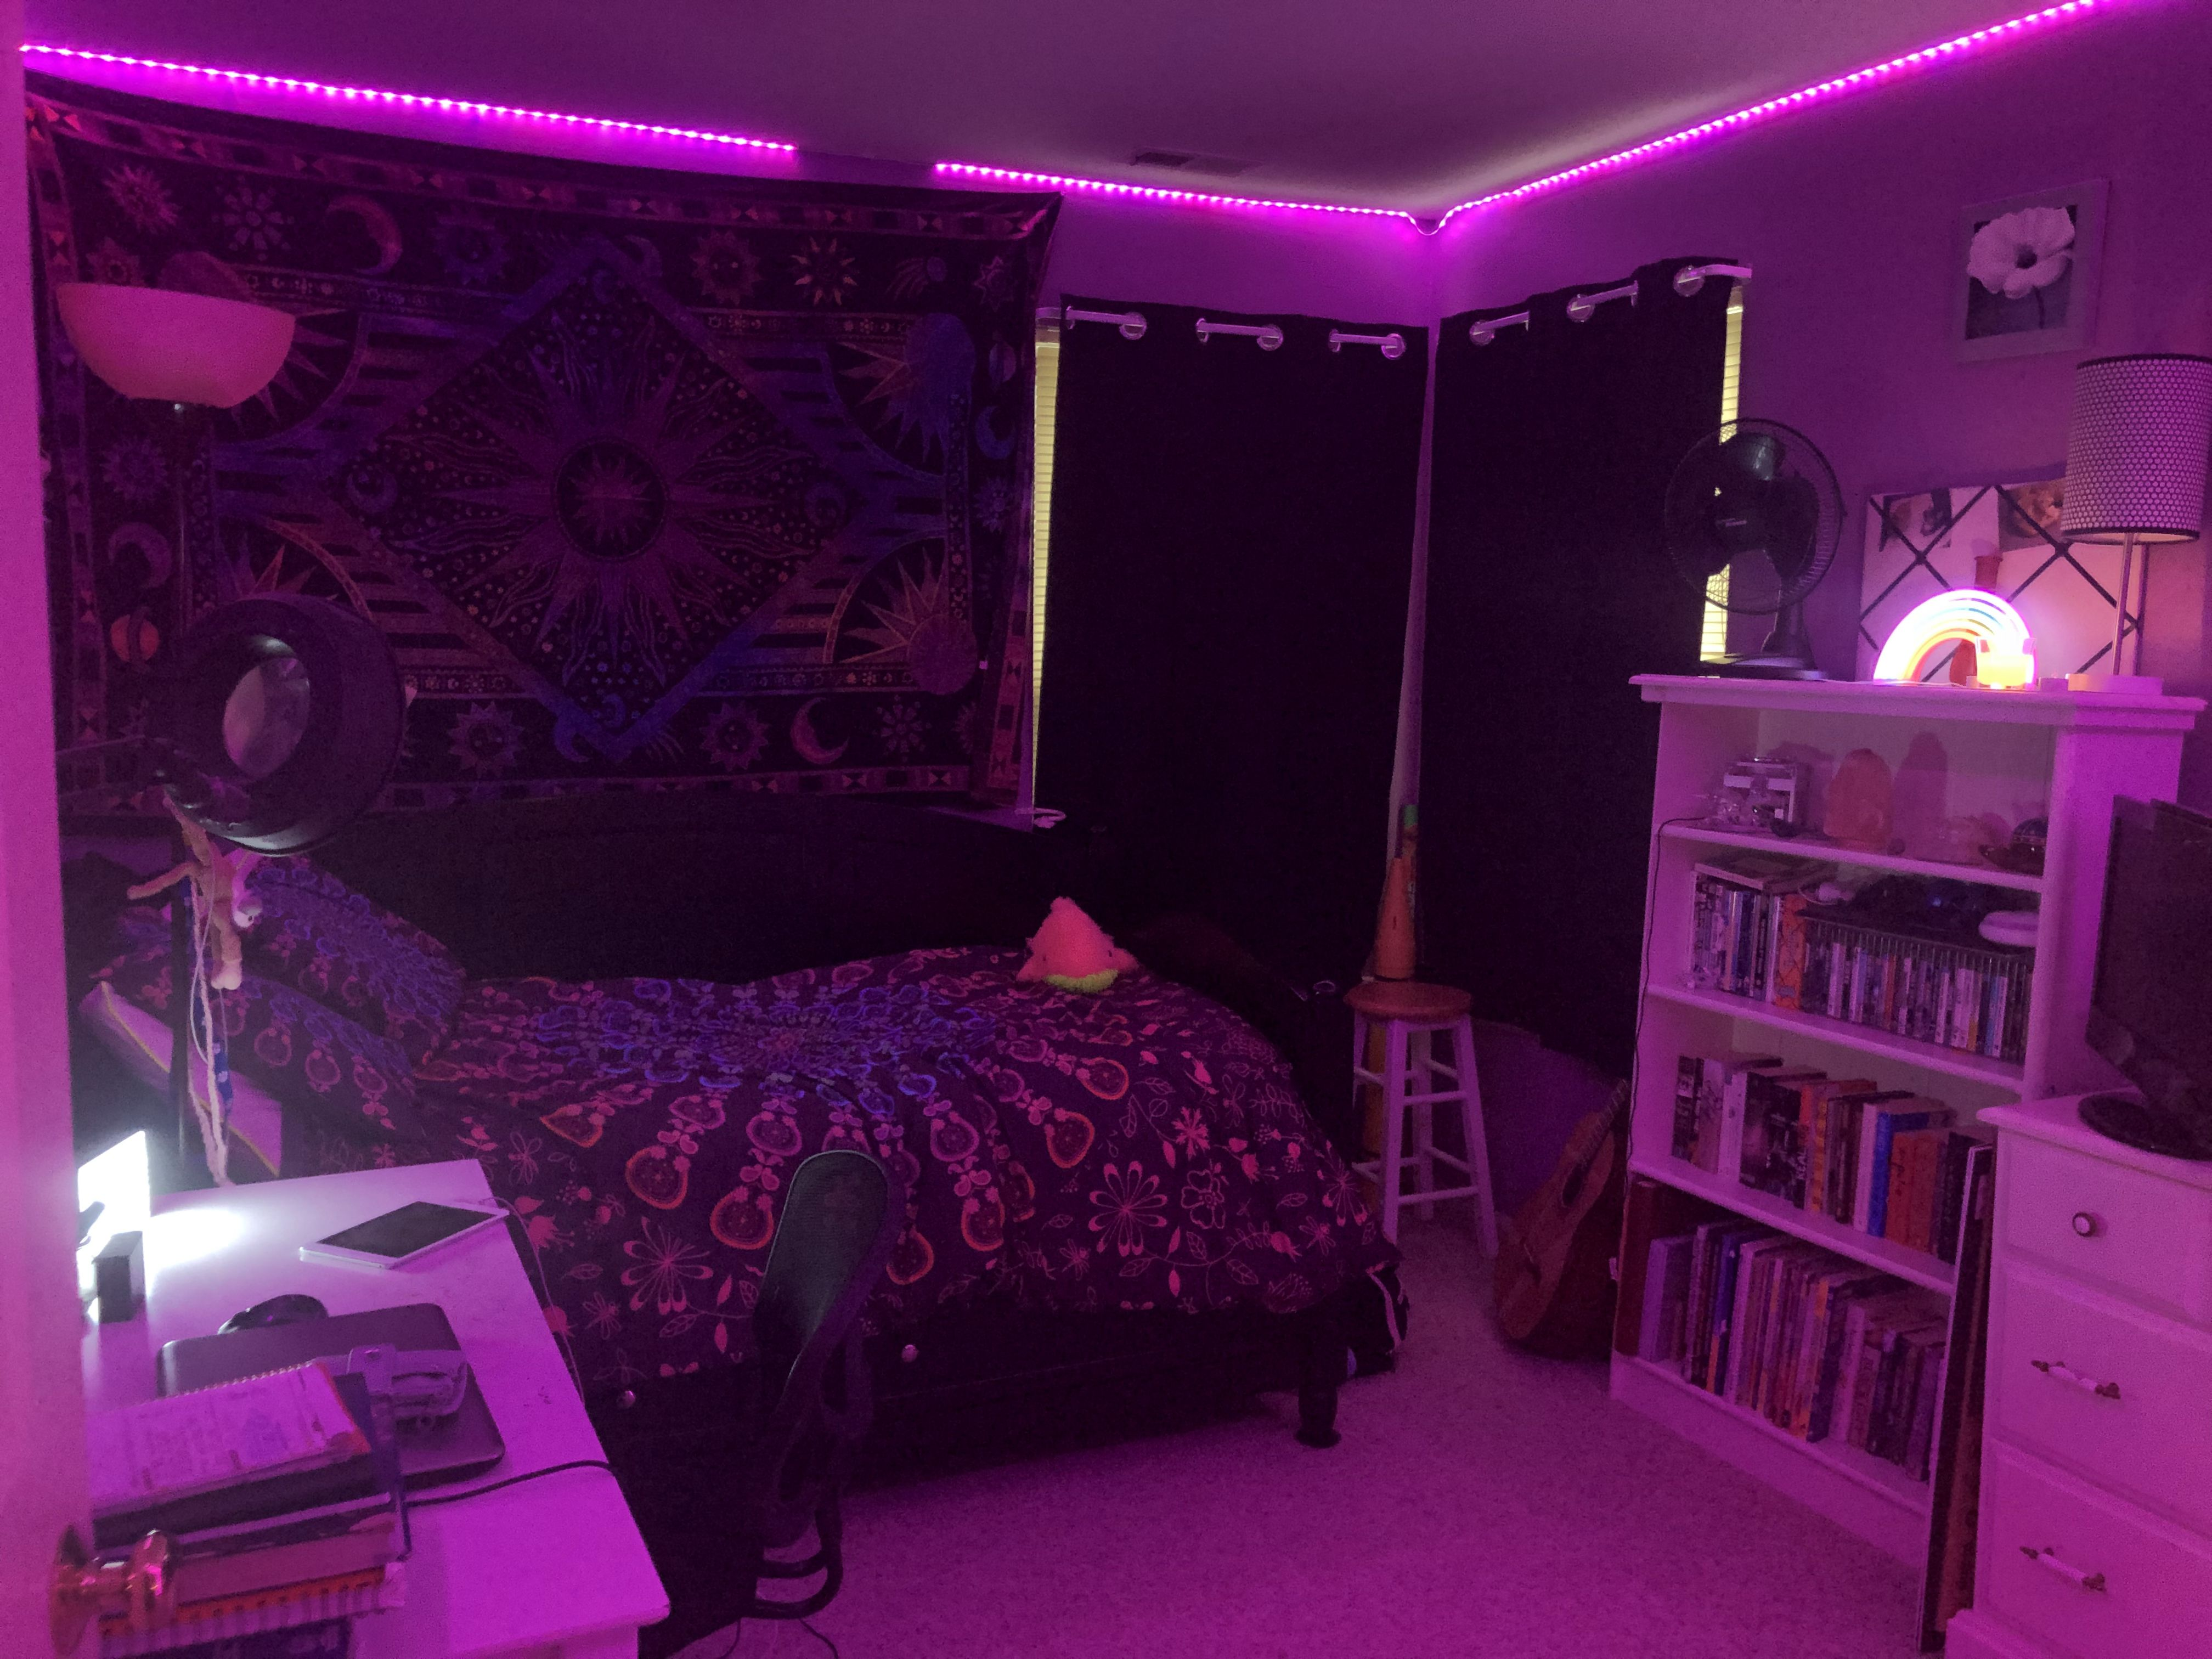 led strip lights and stuff from amazon lmao neon room chill room aesthetic bedroom on cute lights for bedroom decorating ideas id=73624